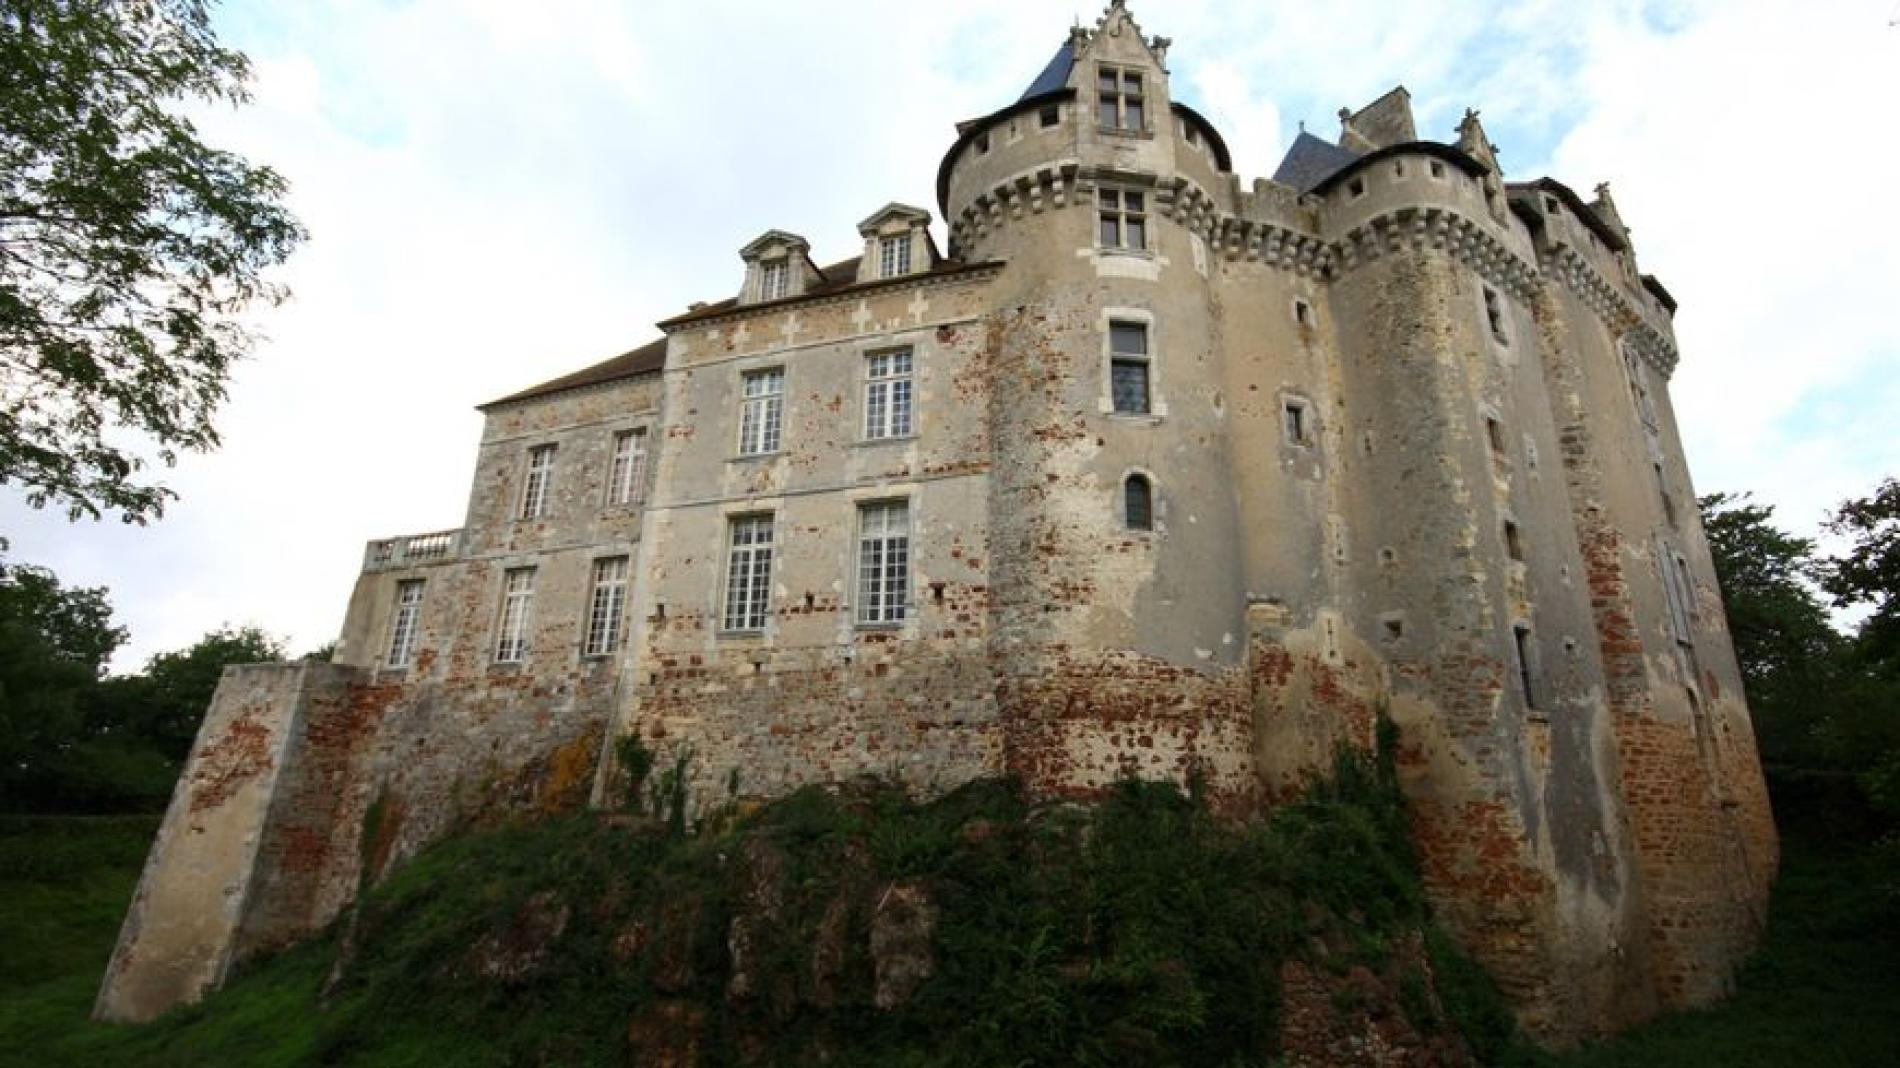 The castle of le Bouchet